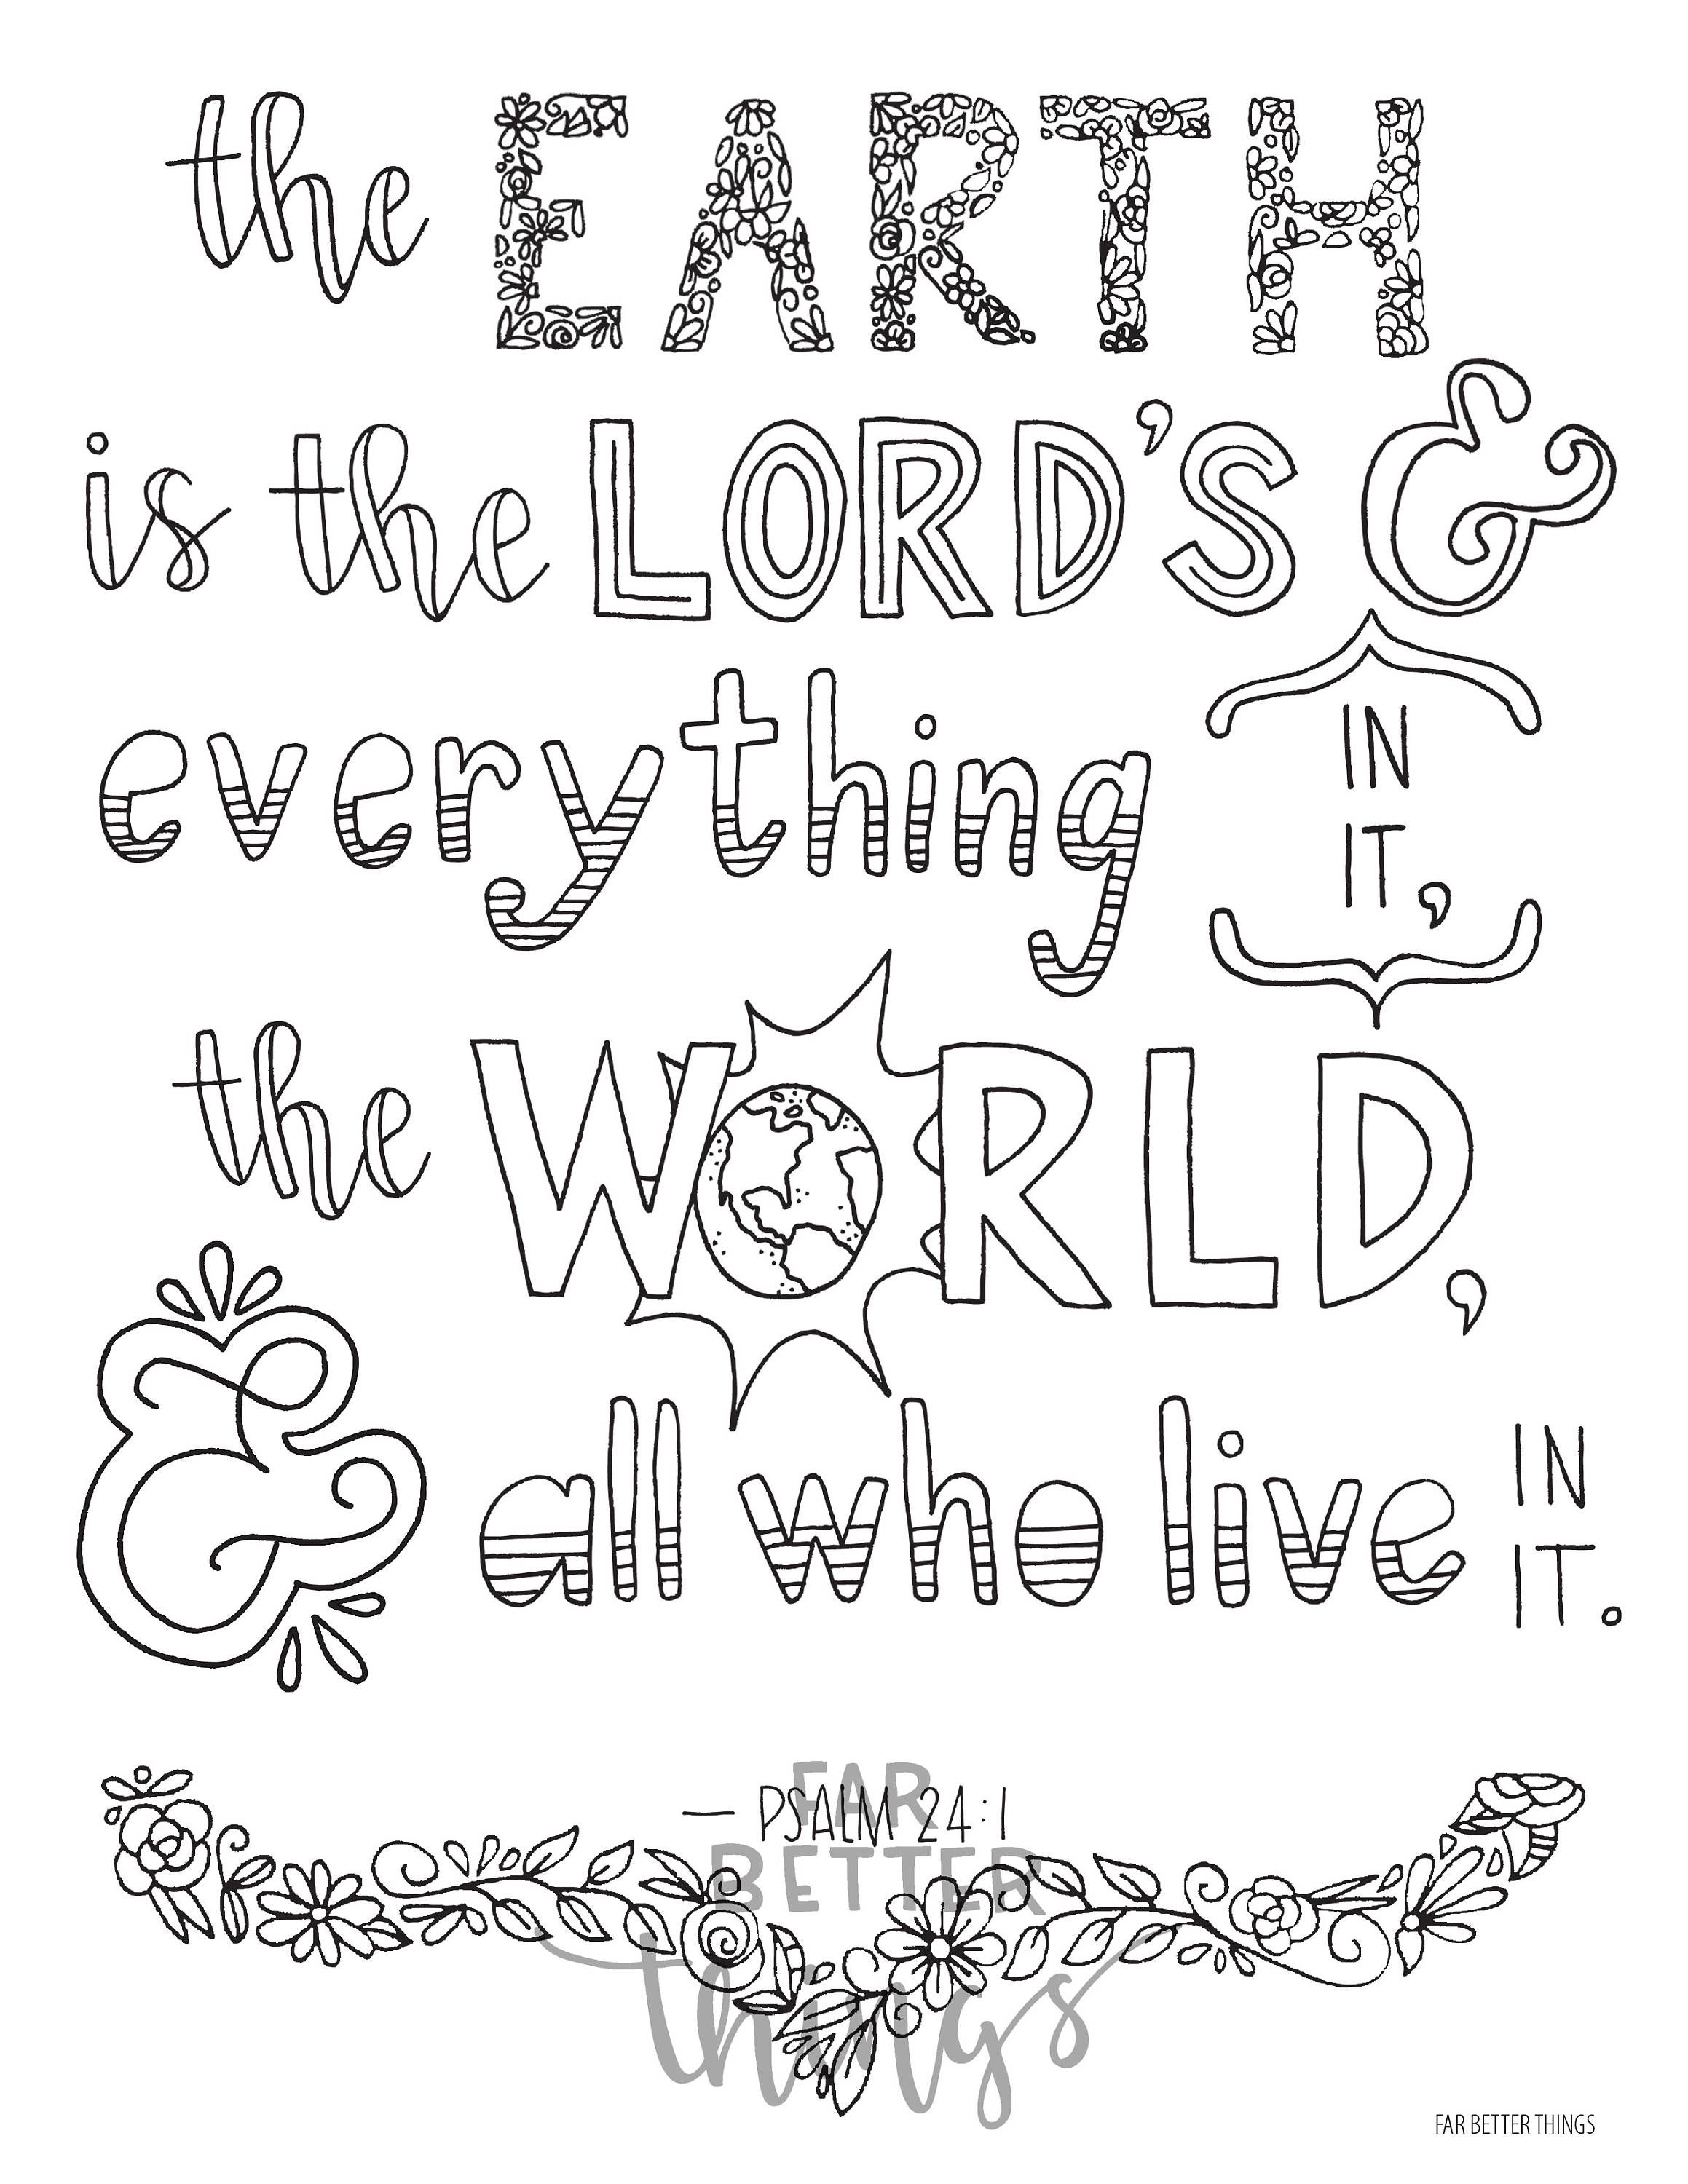 Bible Verse Coloring Page Psalm 24:1 Printable 8.5x11